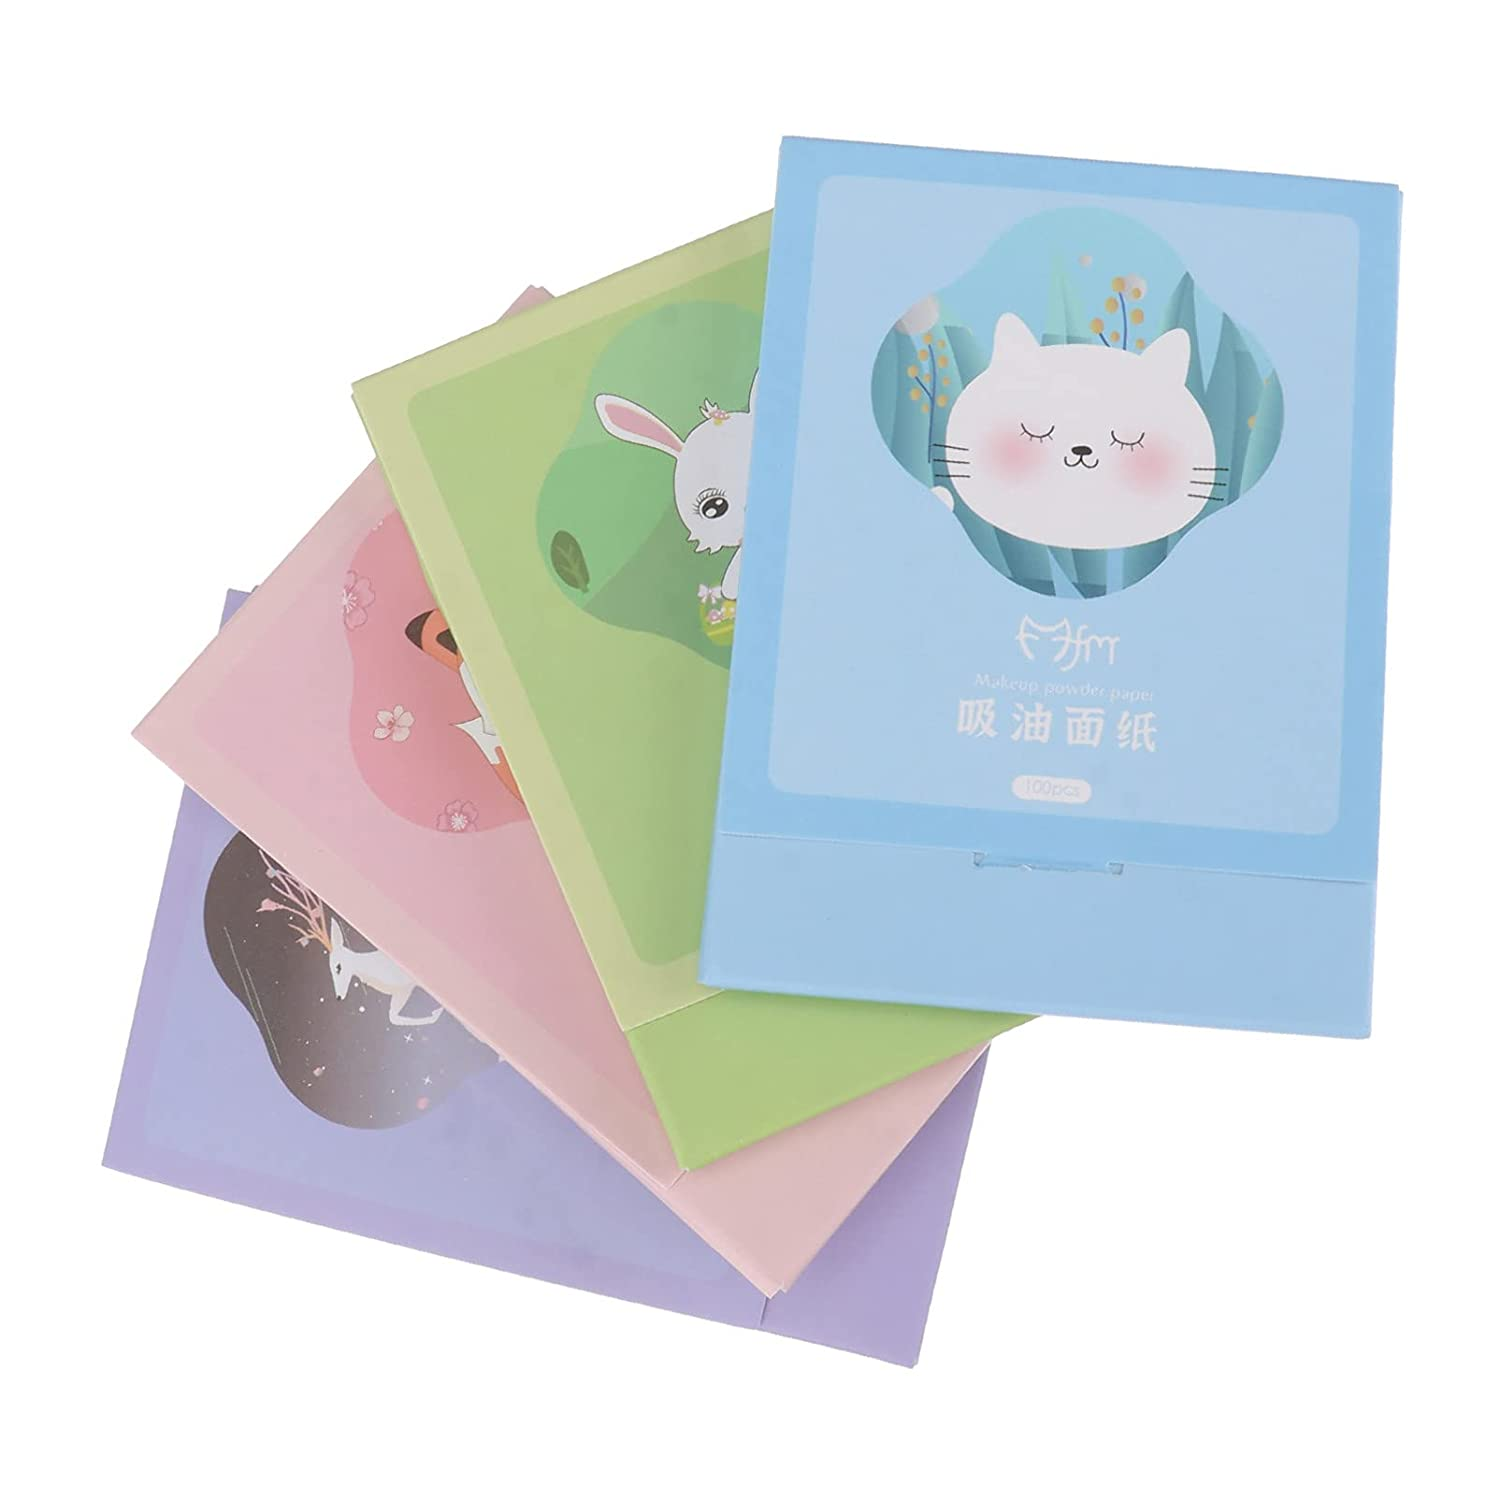 Uonlytech Max 43% OFF 400pcs Oil Absorbing Sheets Facial Absorbin OFFicial site